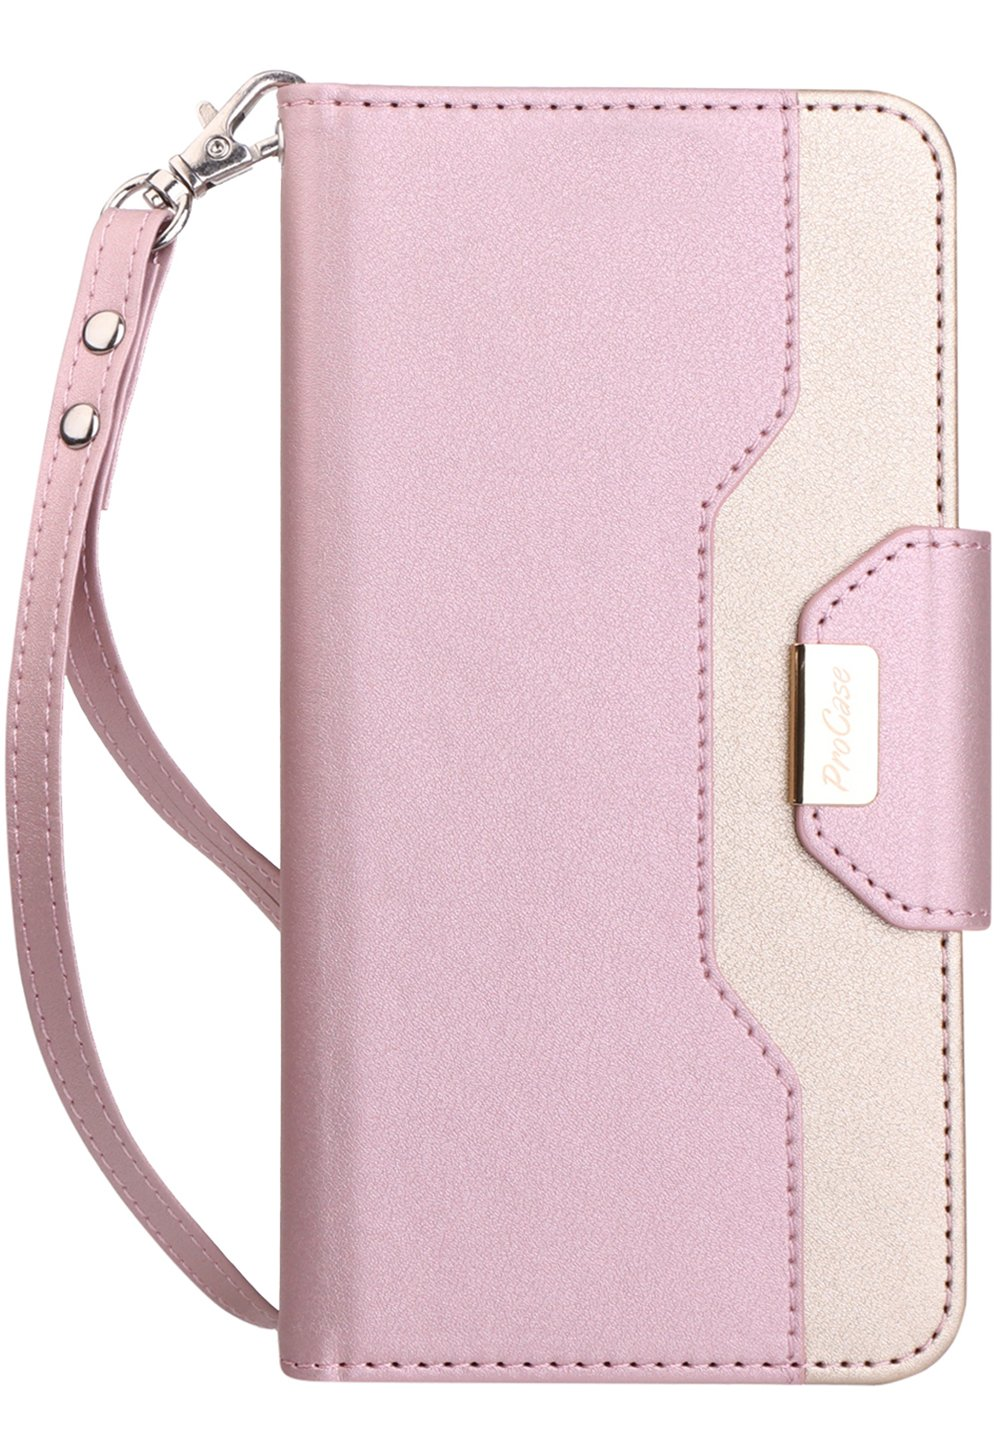 ProCase Google Pixel 3 Wallet Case 2018 Release -MintGreen Flip Kickstand Case with Card Slots Mirror Wristlet Folding Stand Protective Cover for Google Pixel 3